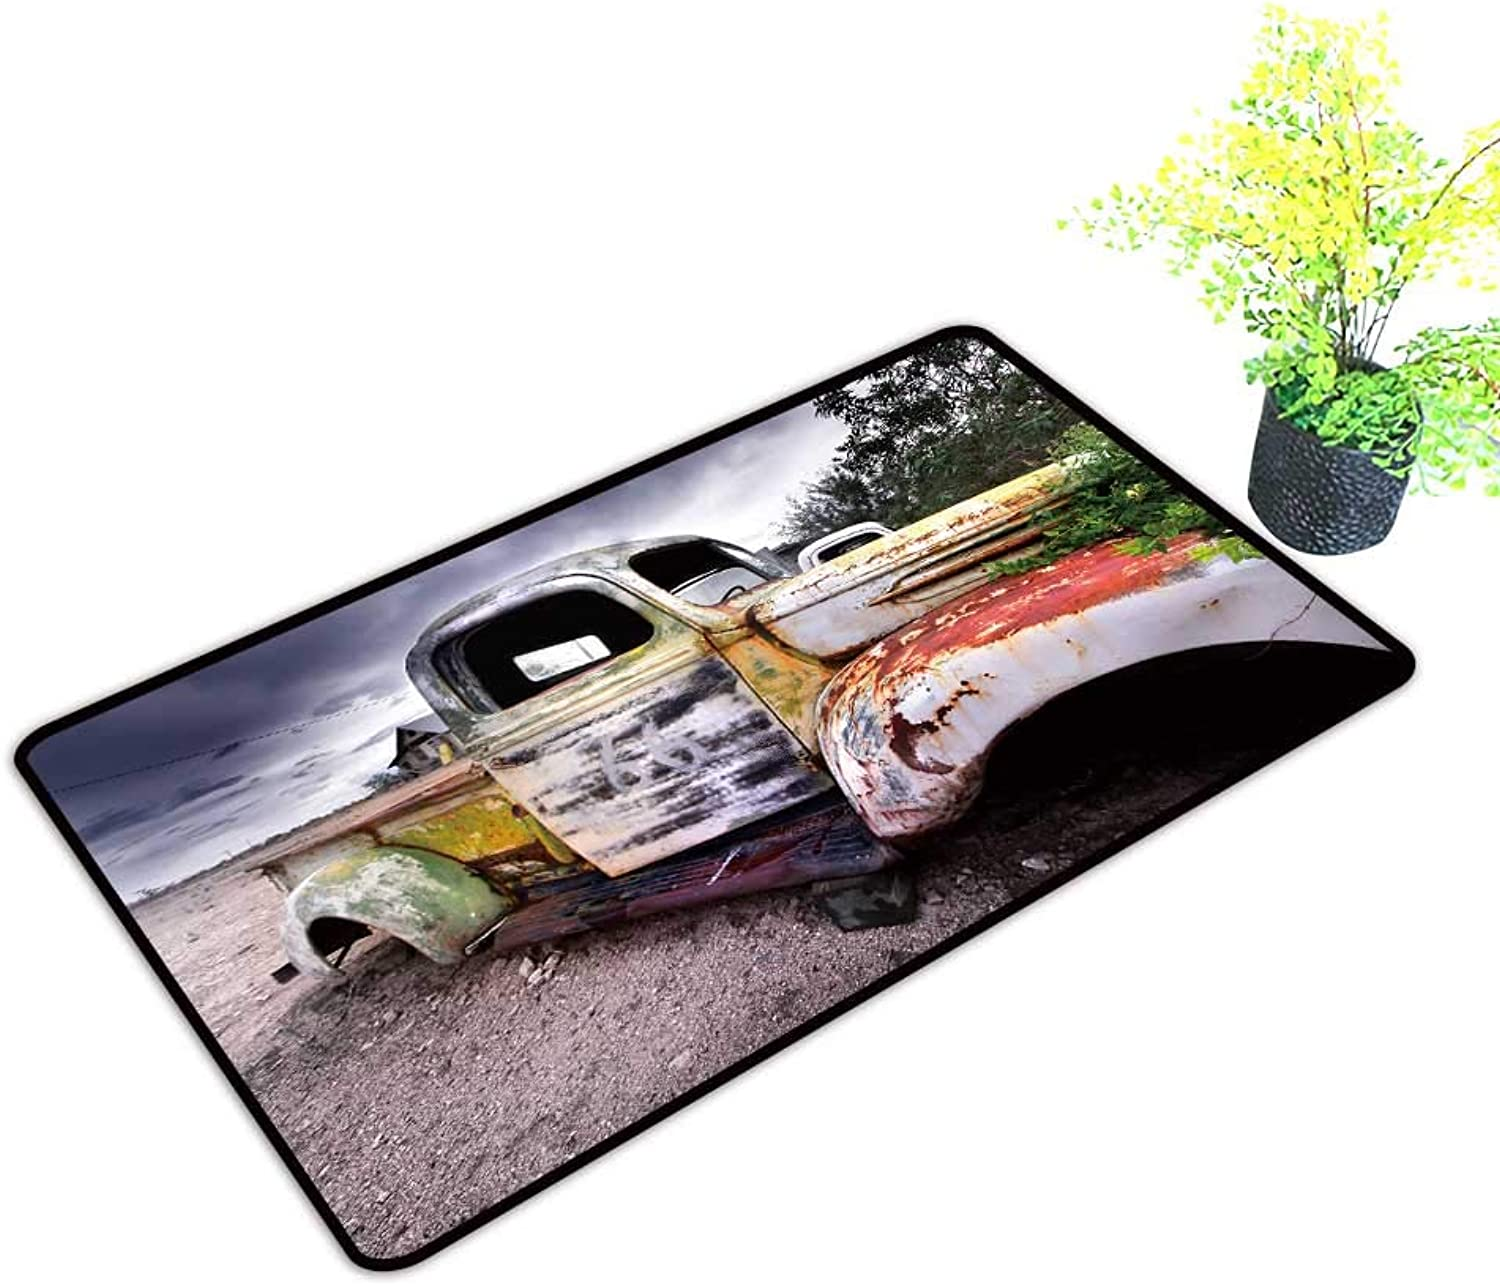 Entrance Door Mat Large Depositphotos Stock rusti Truck Dress Up Your Doorway W39 x H19 INCH